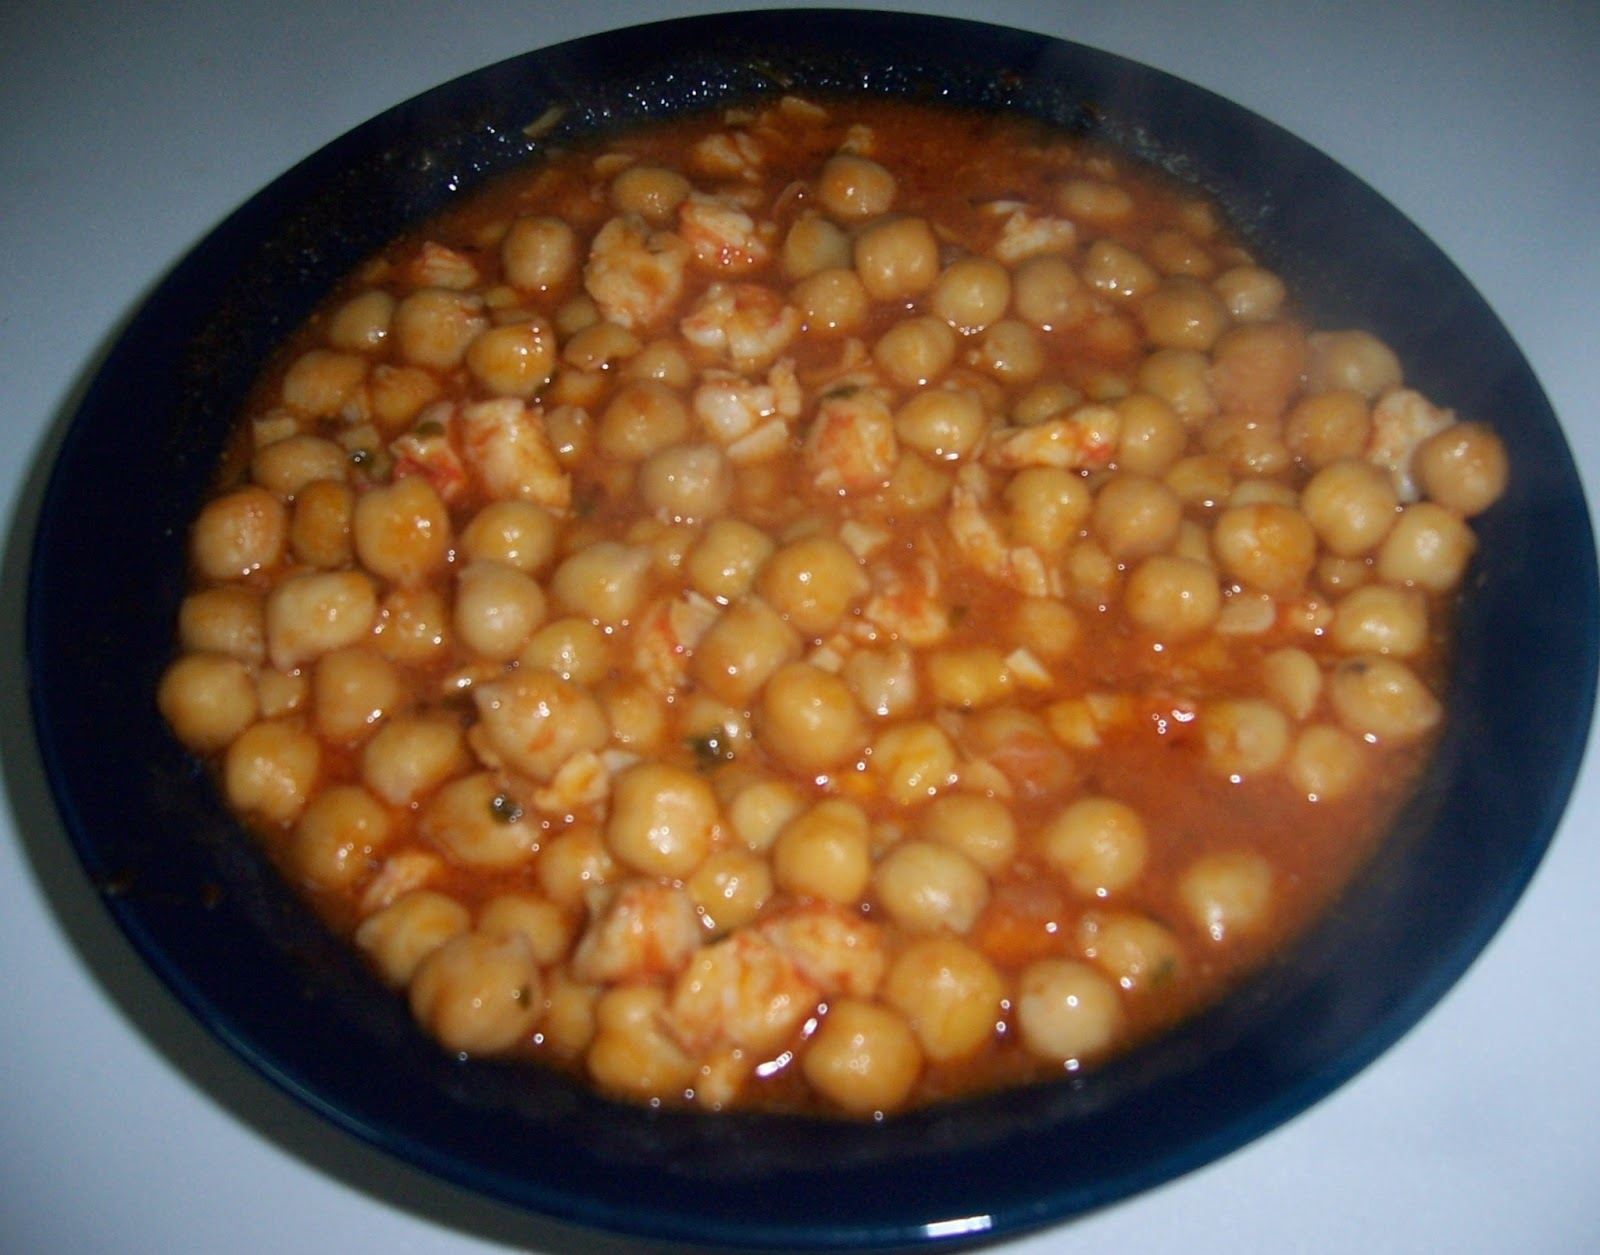 Pucheros de barro garbanzos marineros - Pucheros de barro ...